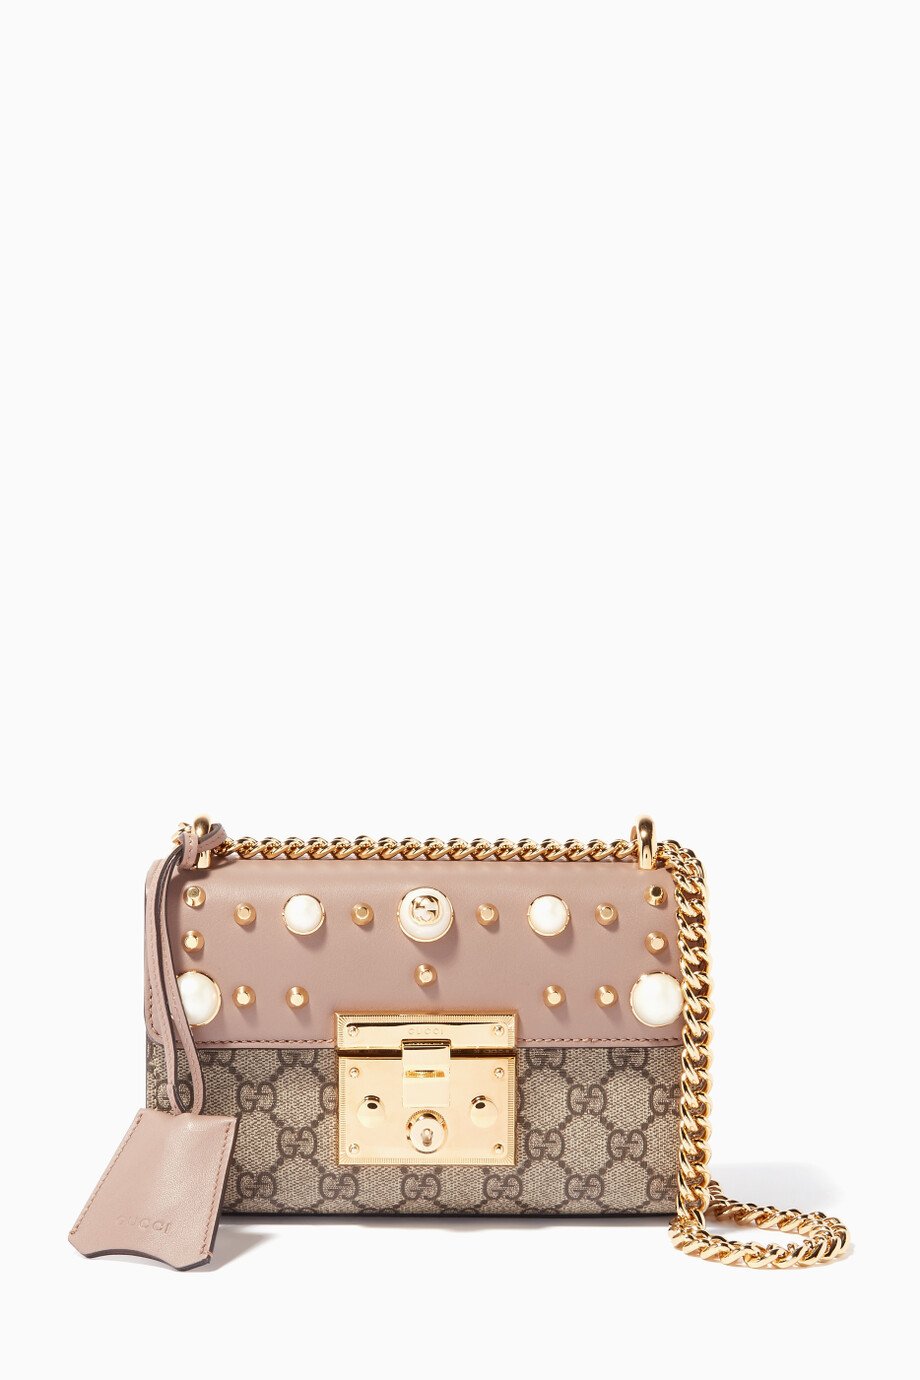 261c82d55 Shop Gucci Pink Pink Small GG Supreme Pearl Shoulder Bag for ...